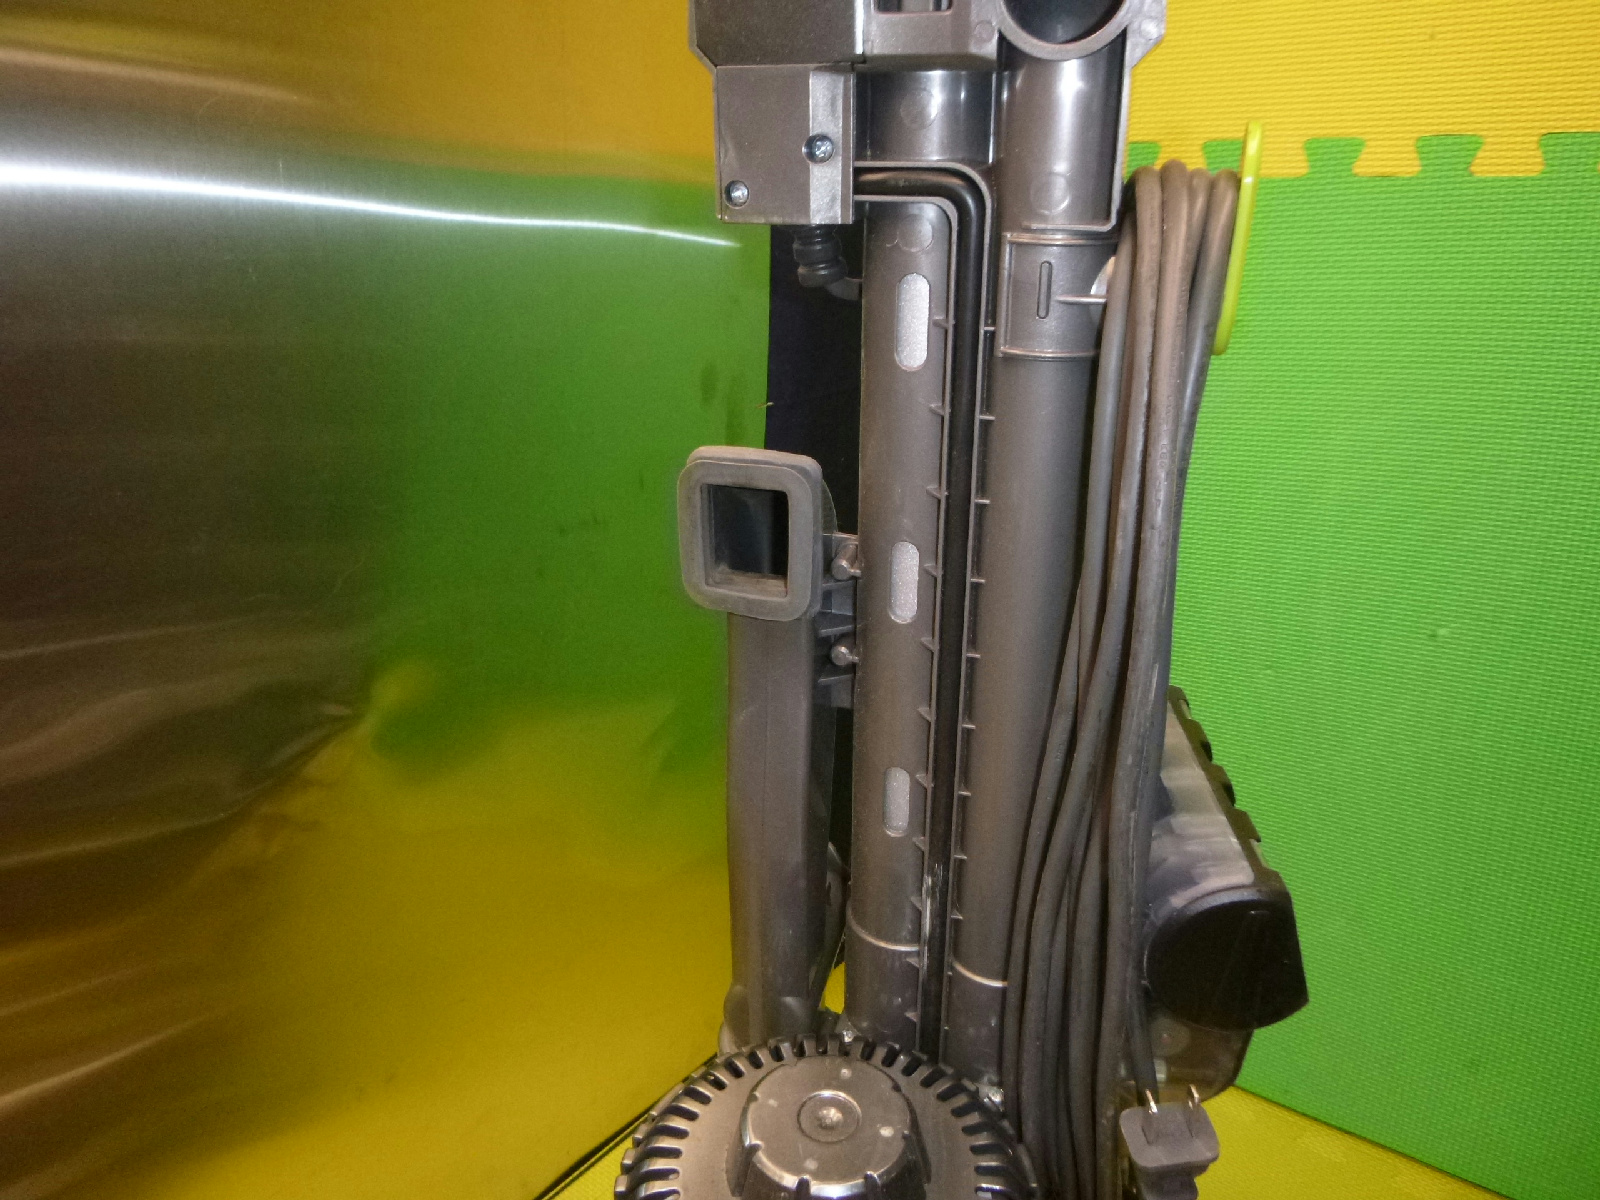 manual for hoover windtunnel vacuum cleaner